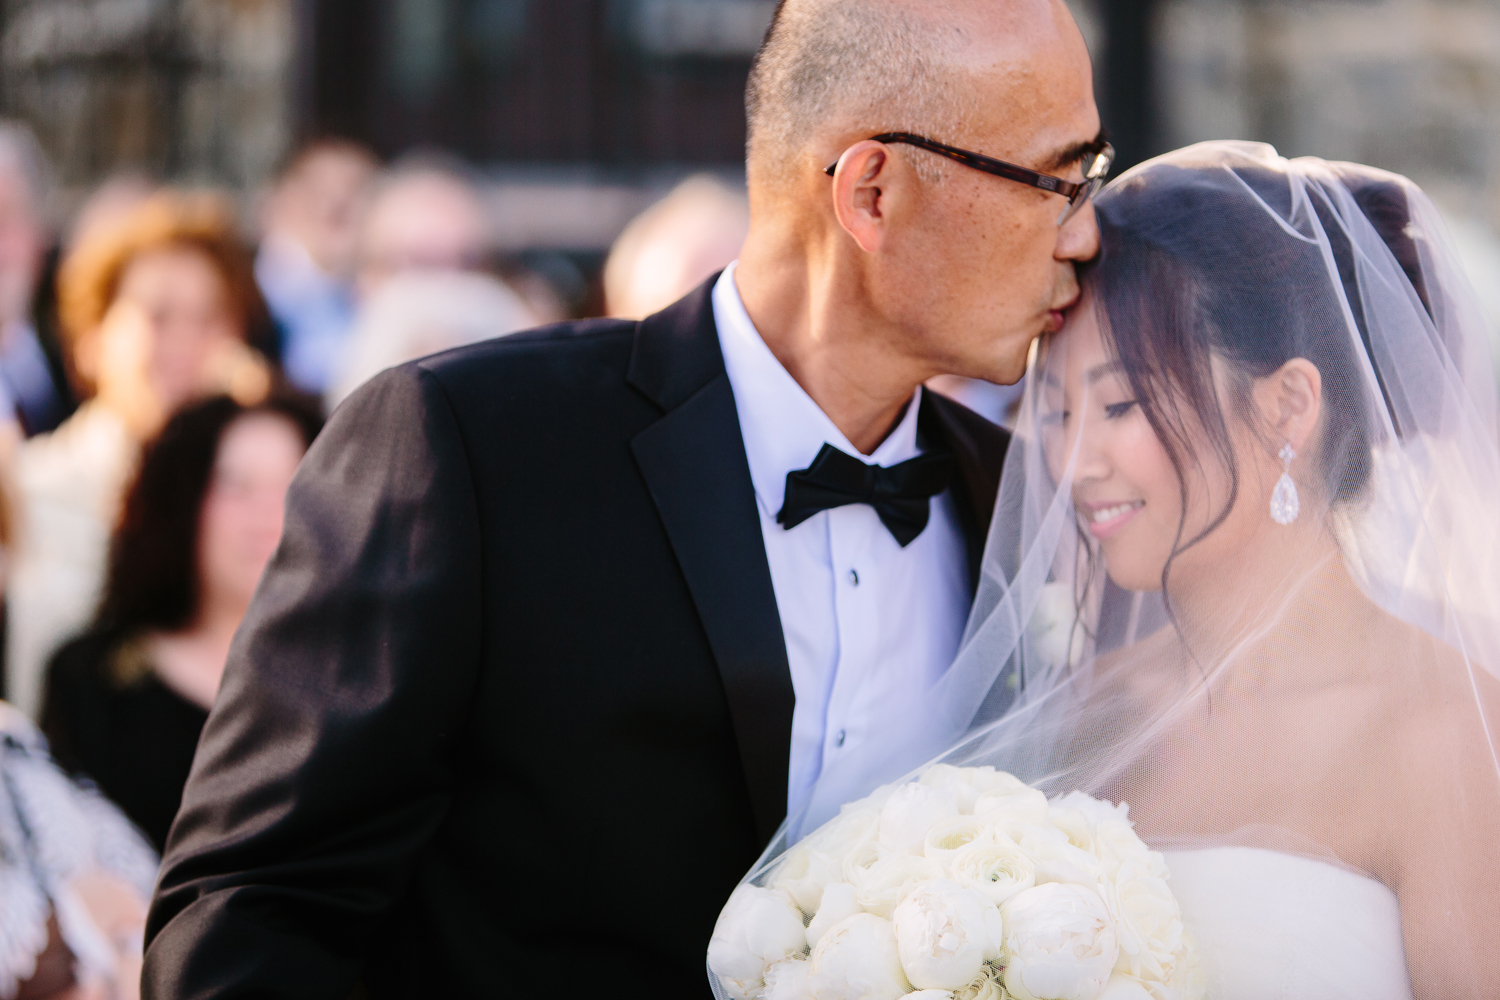 Father of bride kissing bride on head before wedding ceremony